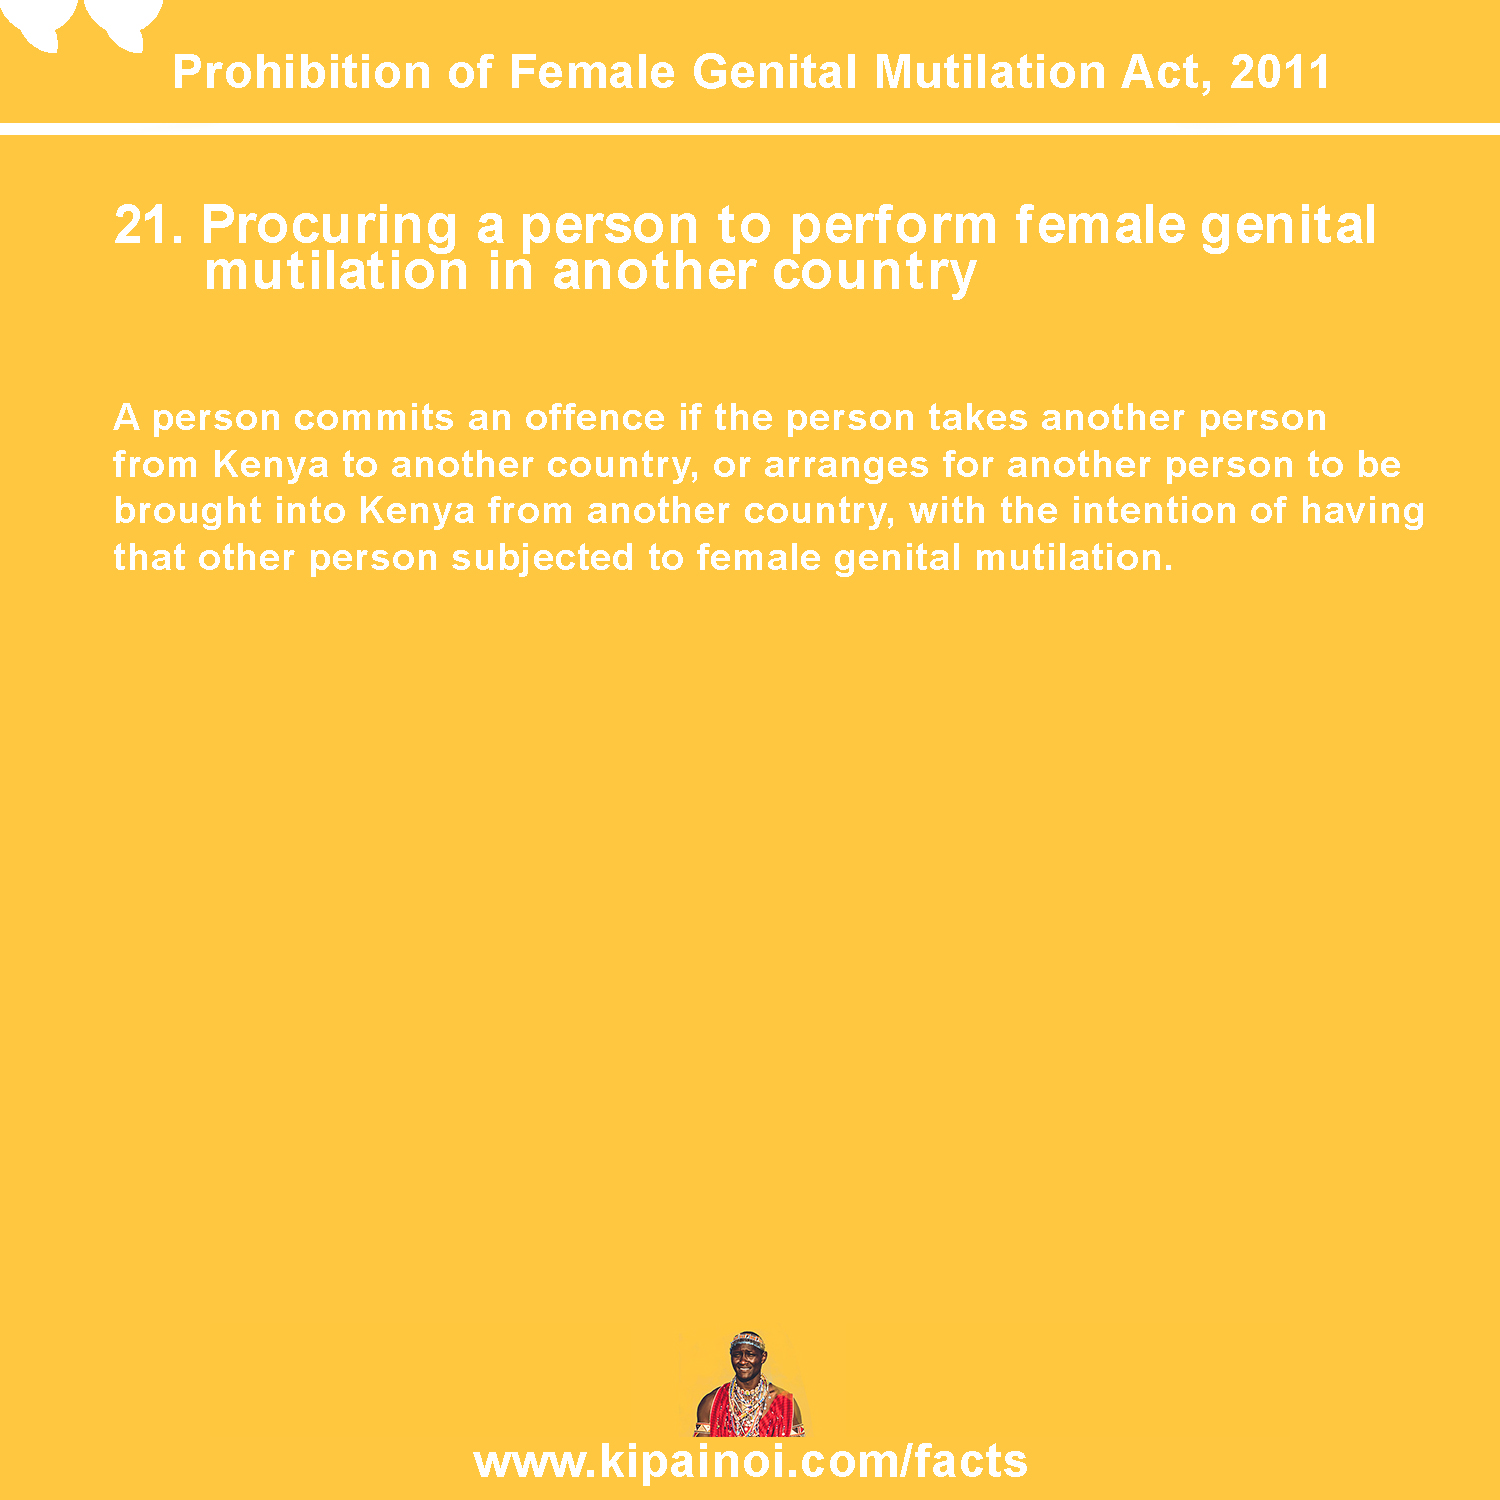 21. Procuring a person to perform female genital mutilation in another country